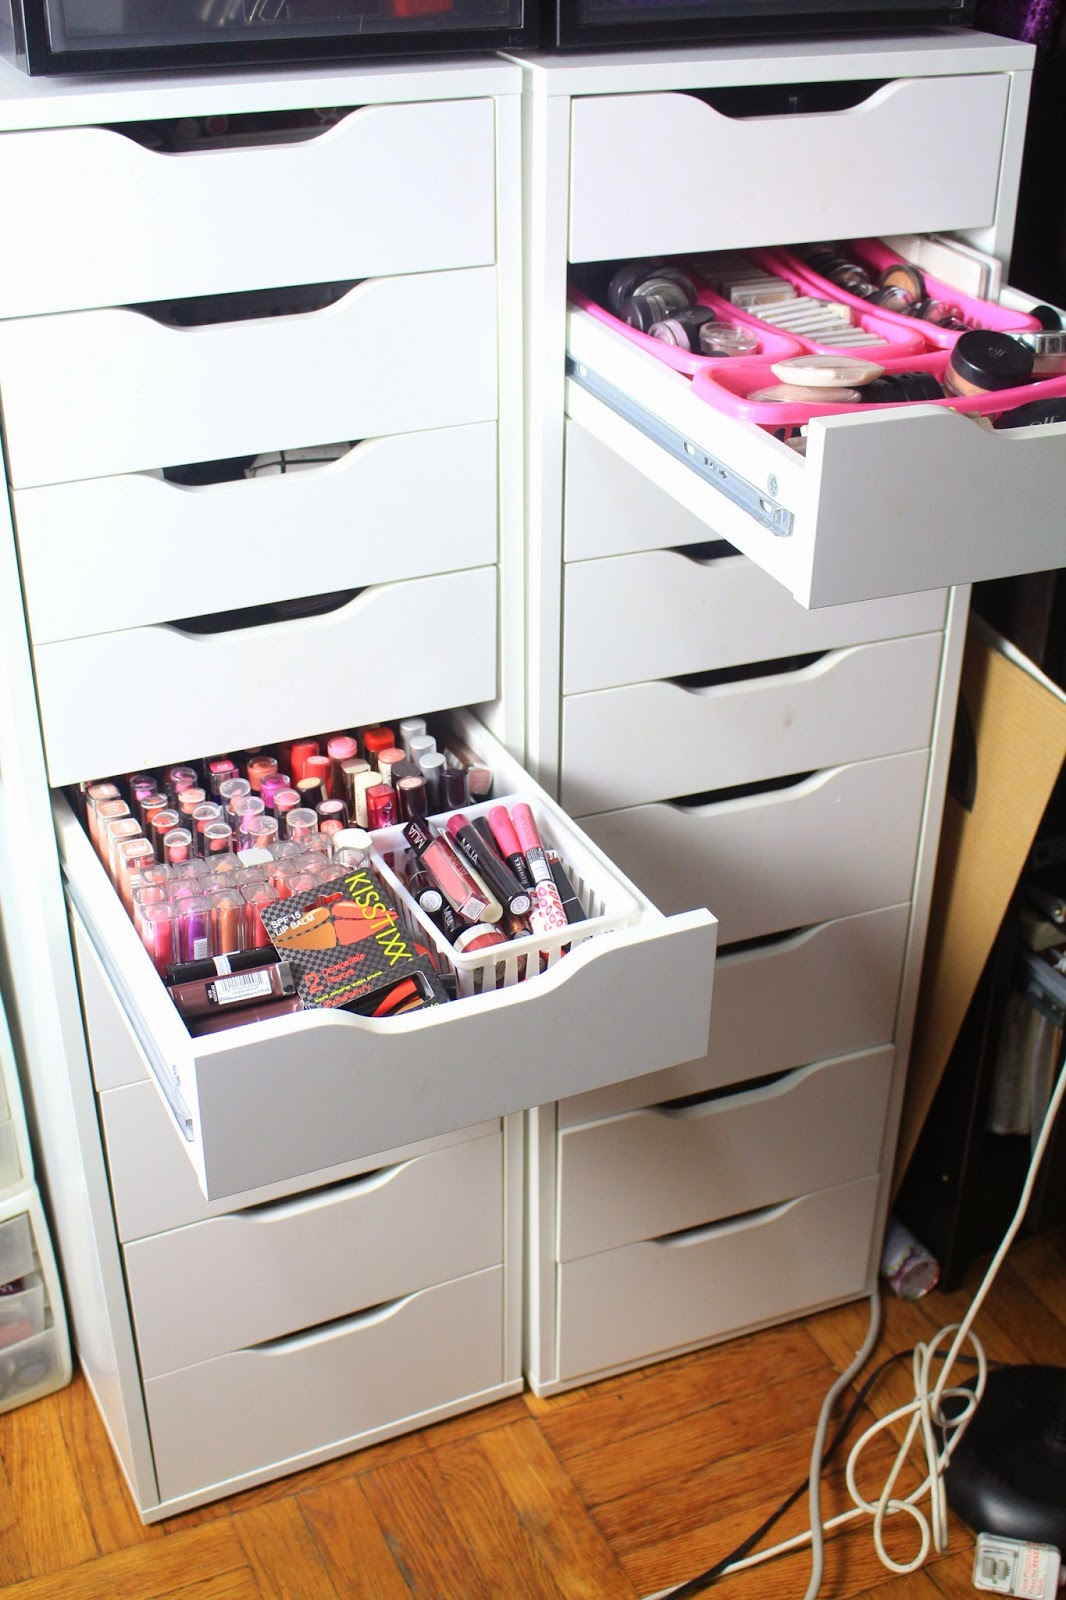 Diva makeup queen diy ikea alex drawers for makeup Makeup drawer organizer ikea